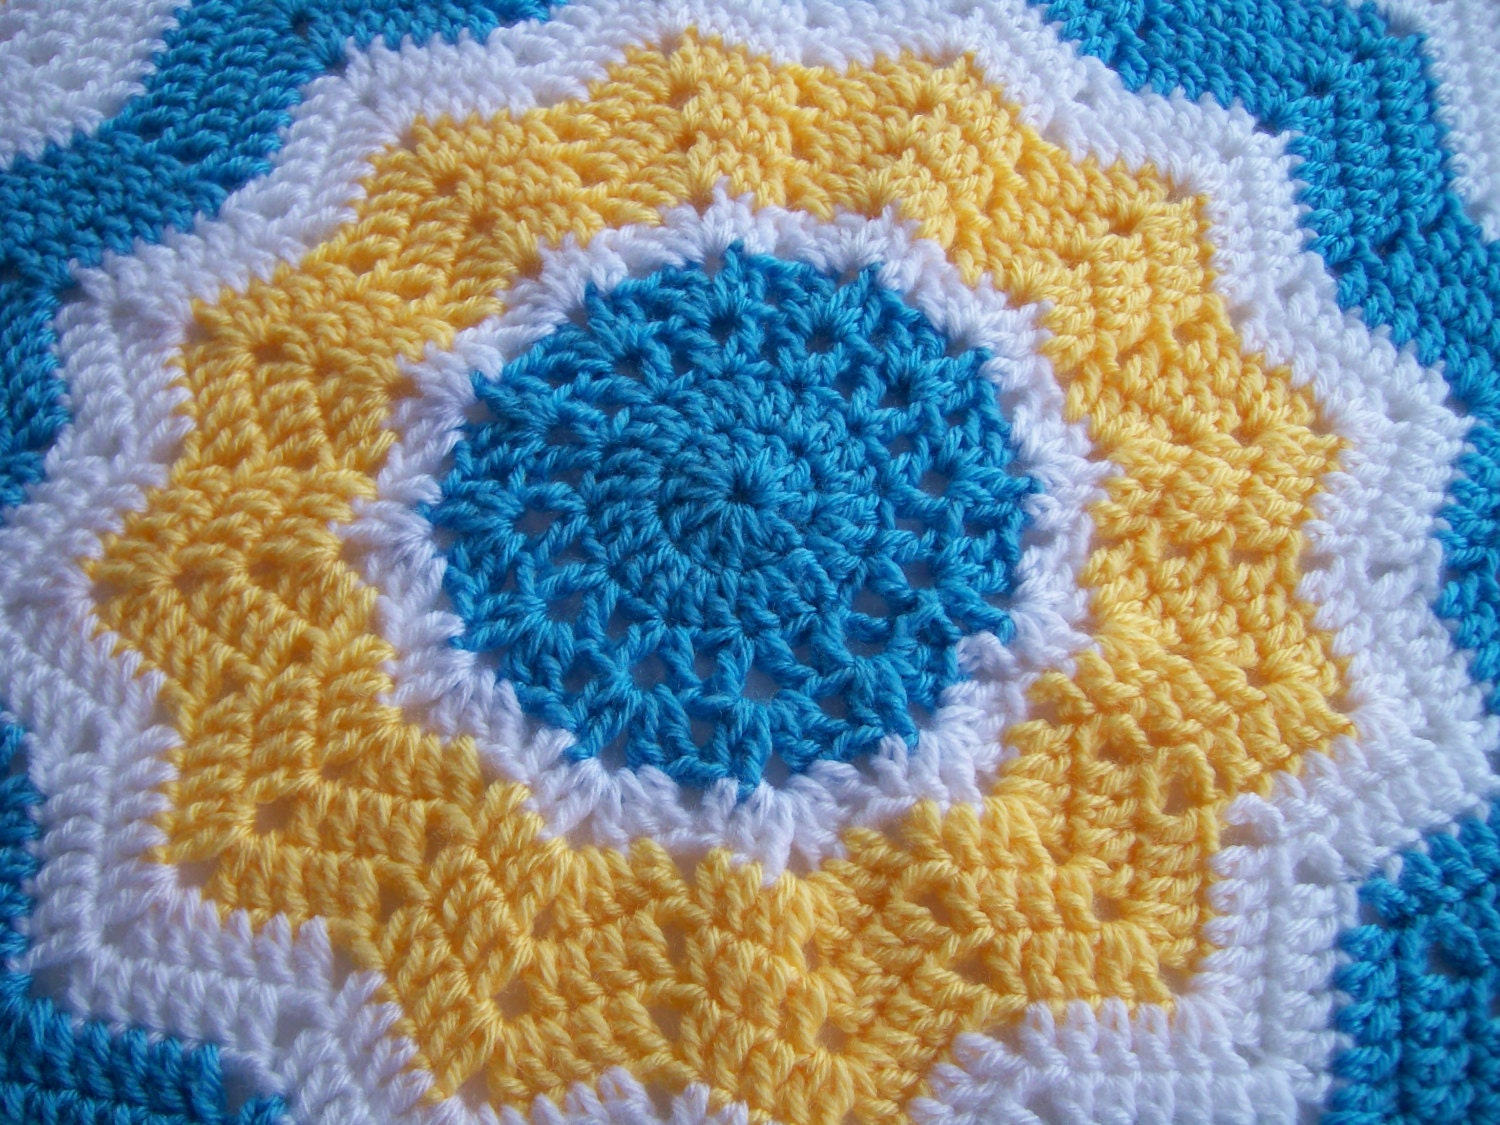 Crochet Pattern For Chevron Baby Afghan : Crocheted Round Ripple Baby Afghan in Blue Yellow and White